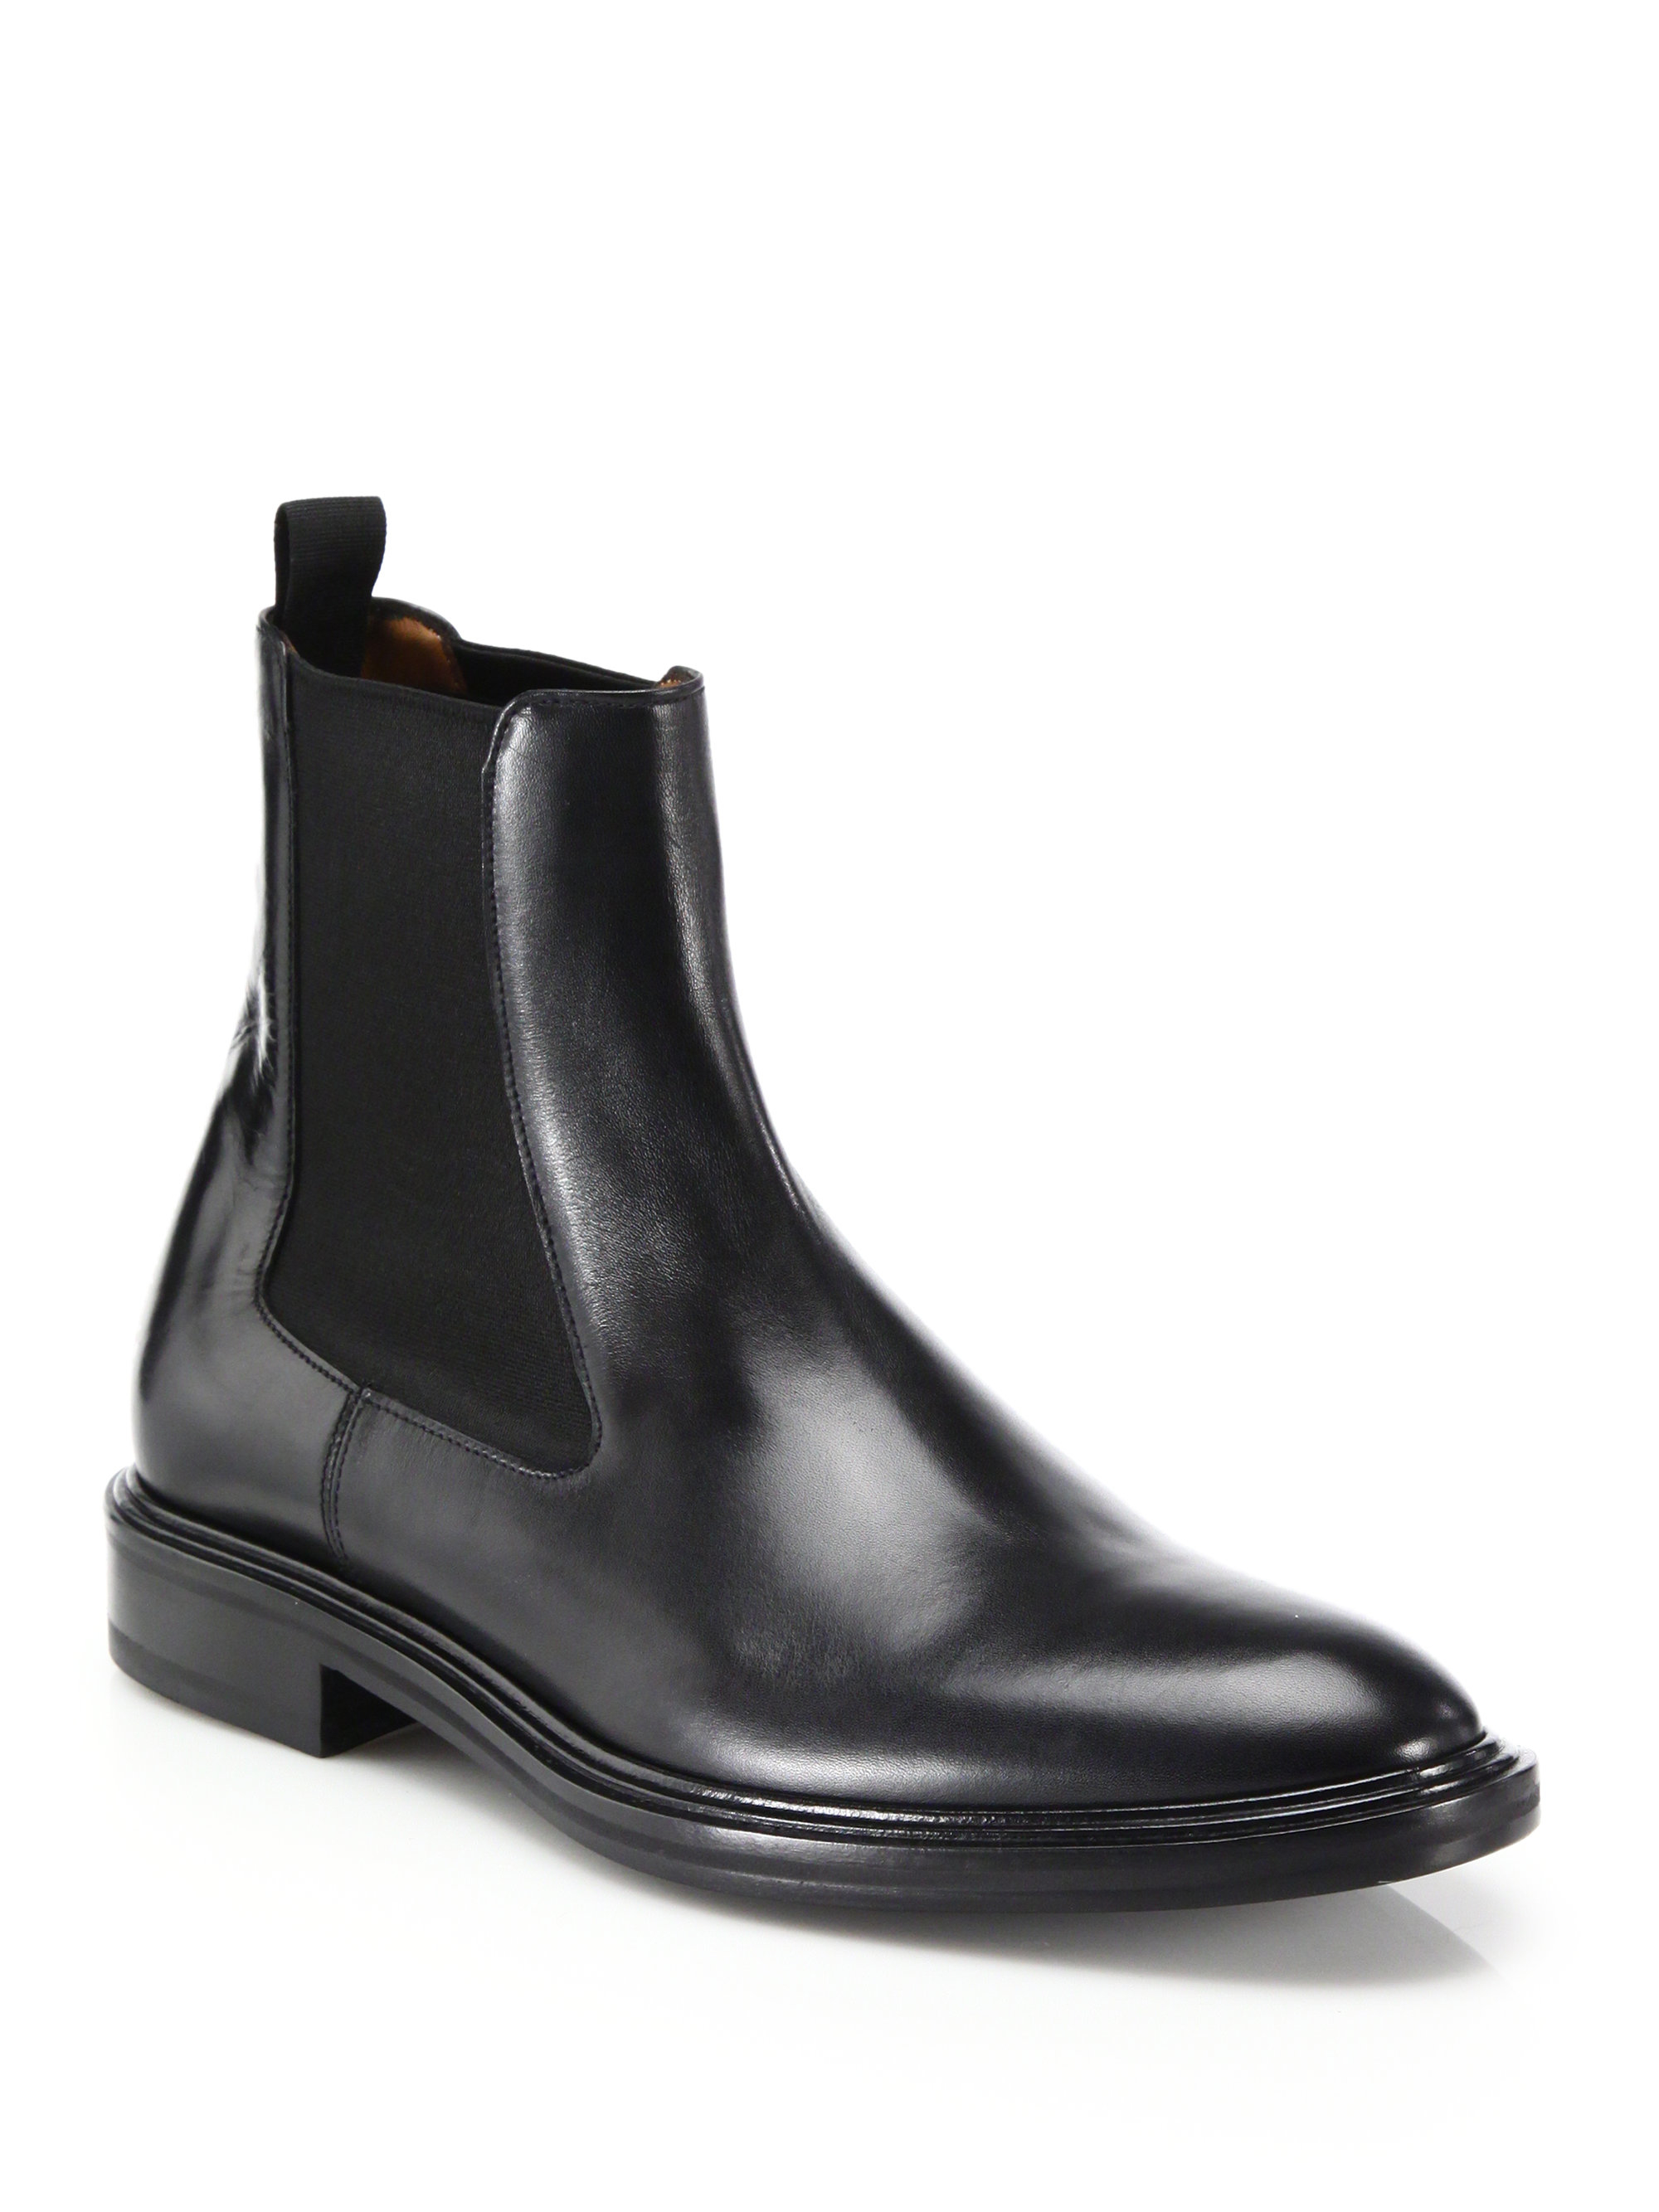 GivenchyChelsea boots